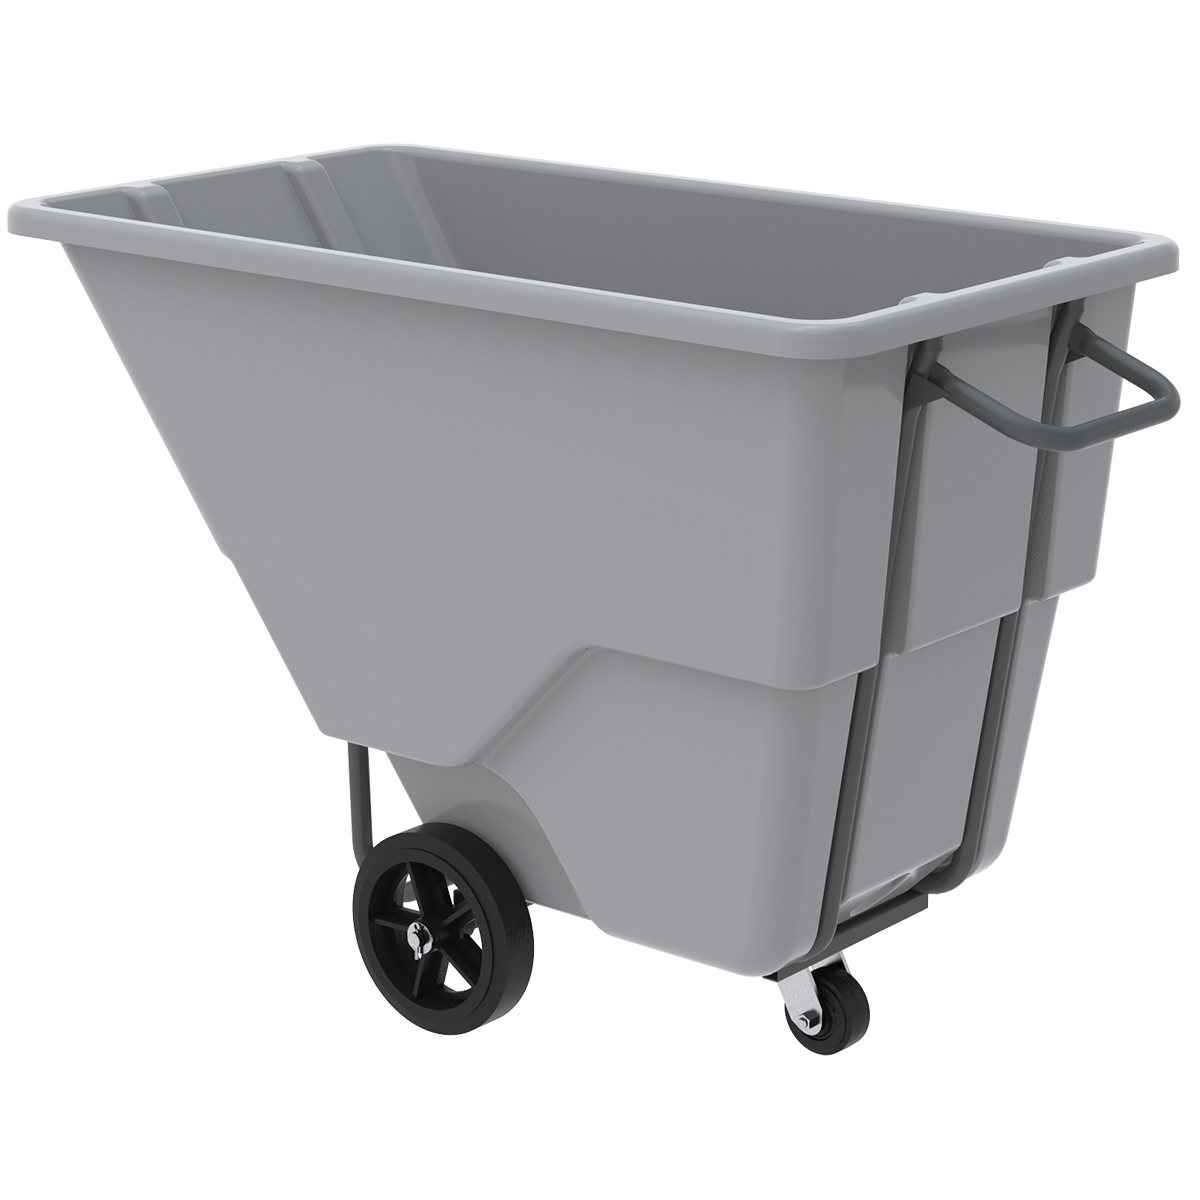 AKRO-TILT TRUCK, HEAVY DUTY, 100GAL - 1/2 YD.  This item sold in carton quantities of 1.